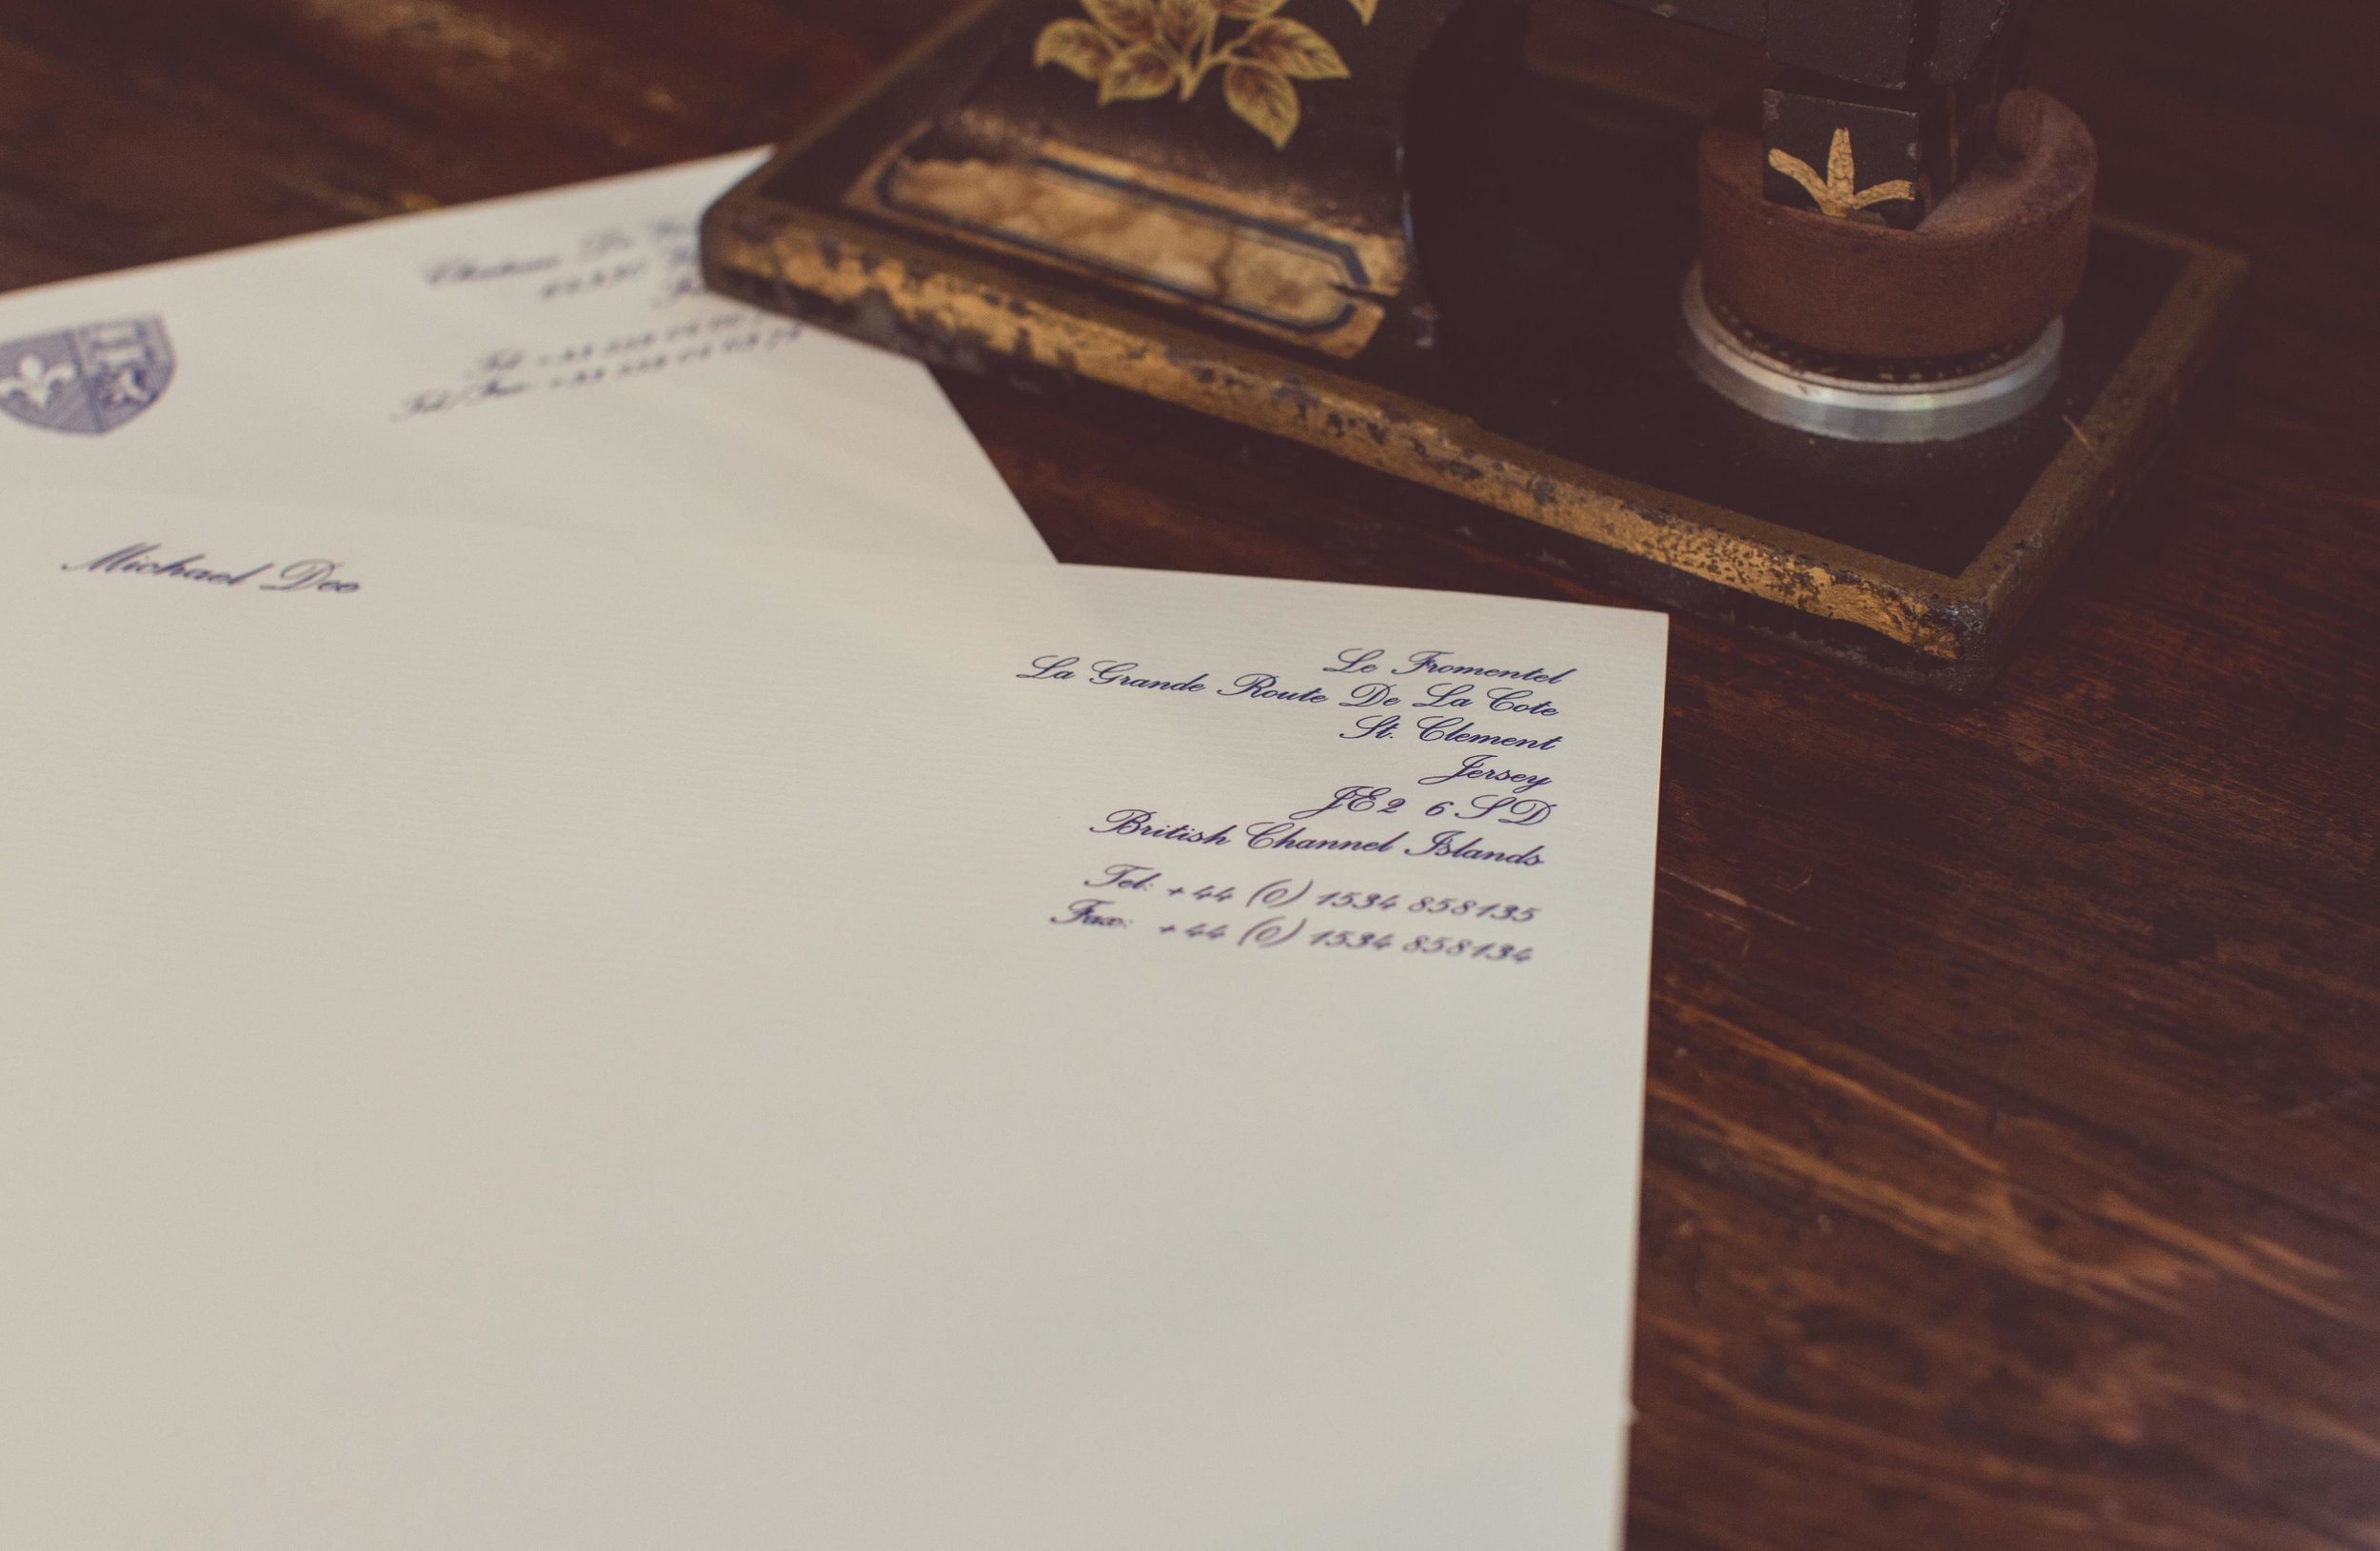 Engraved personal stationery